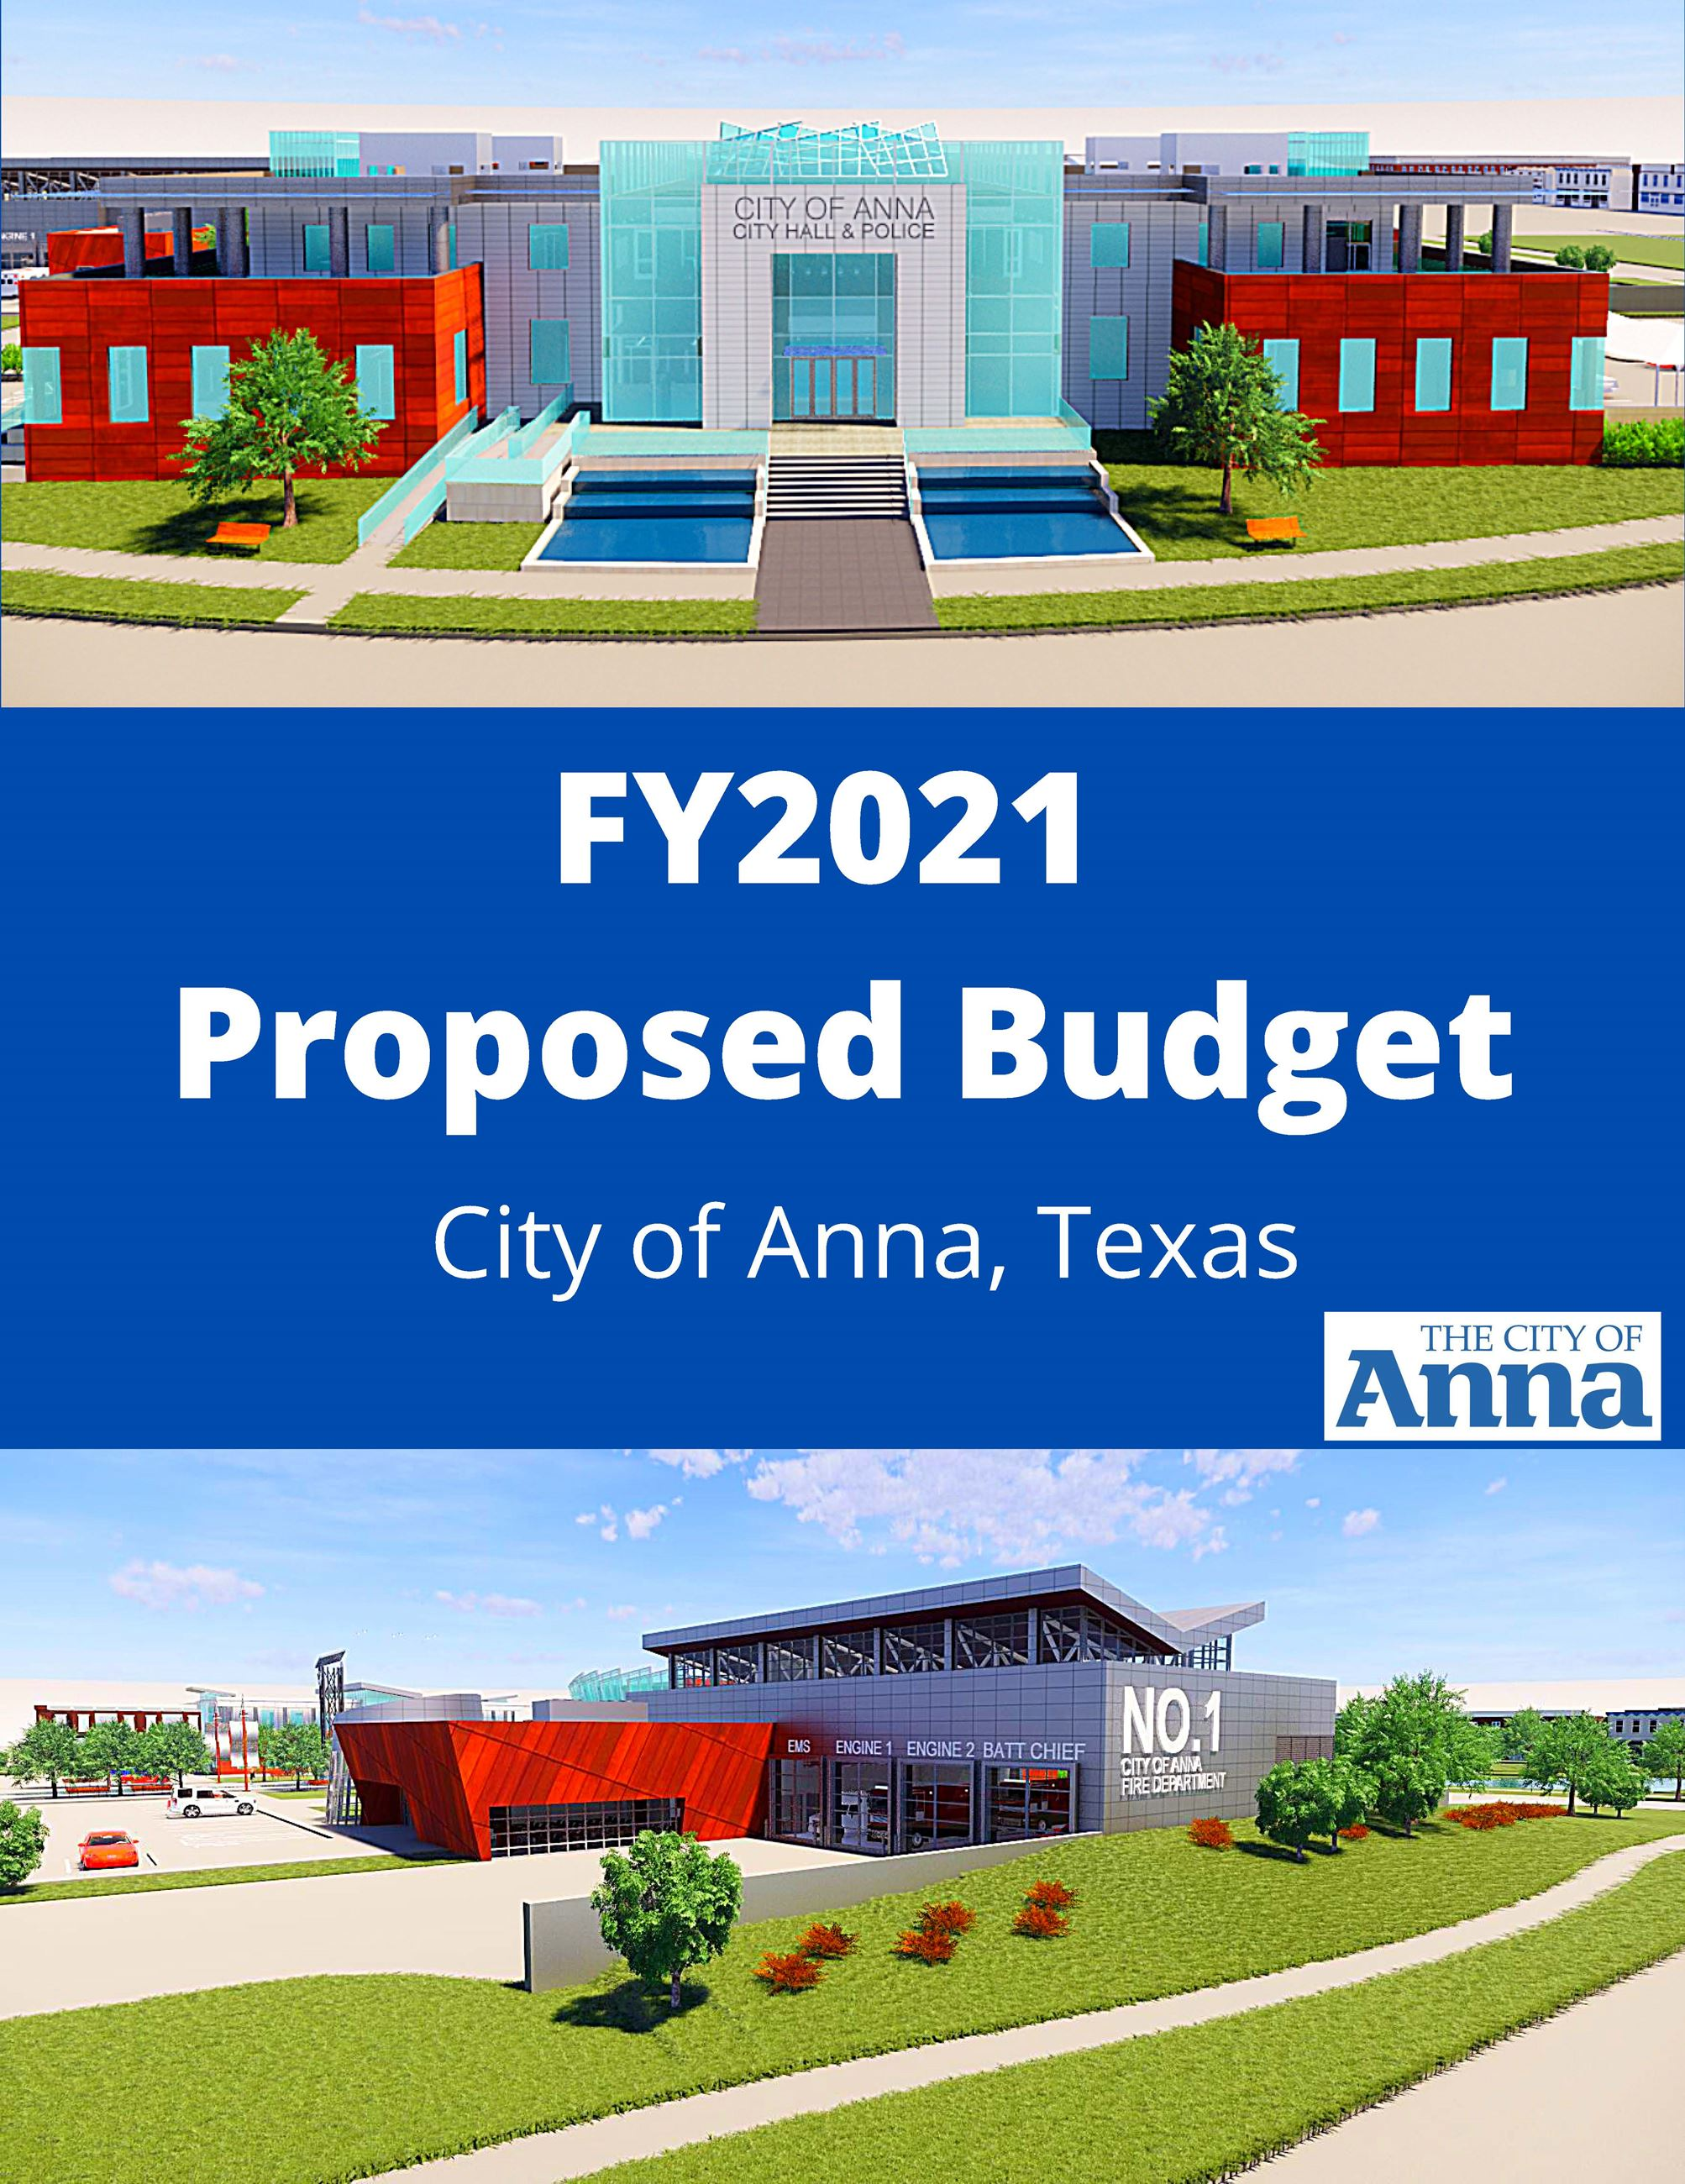 FY2021 City of Anna Proposed Budget (002) 1